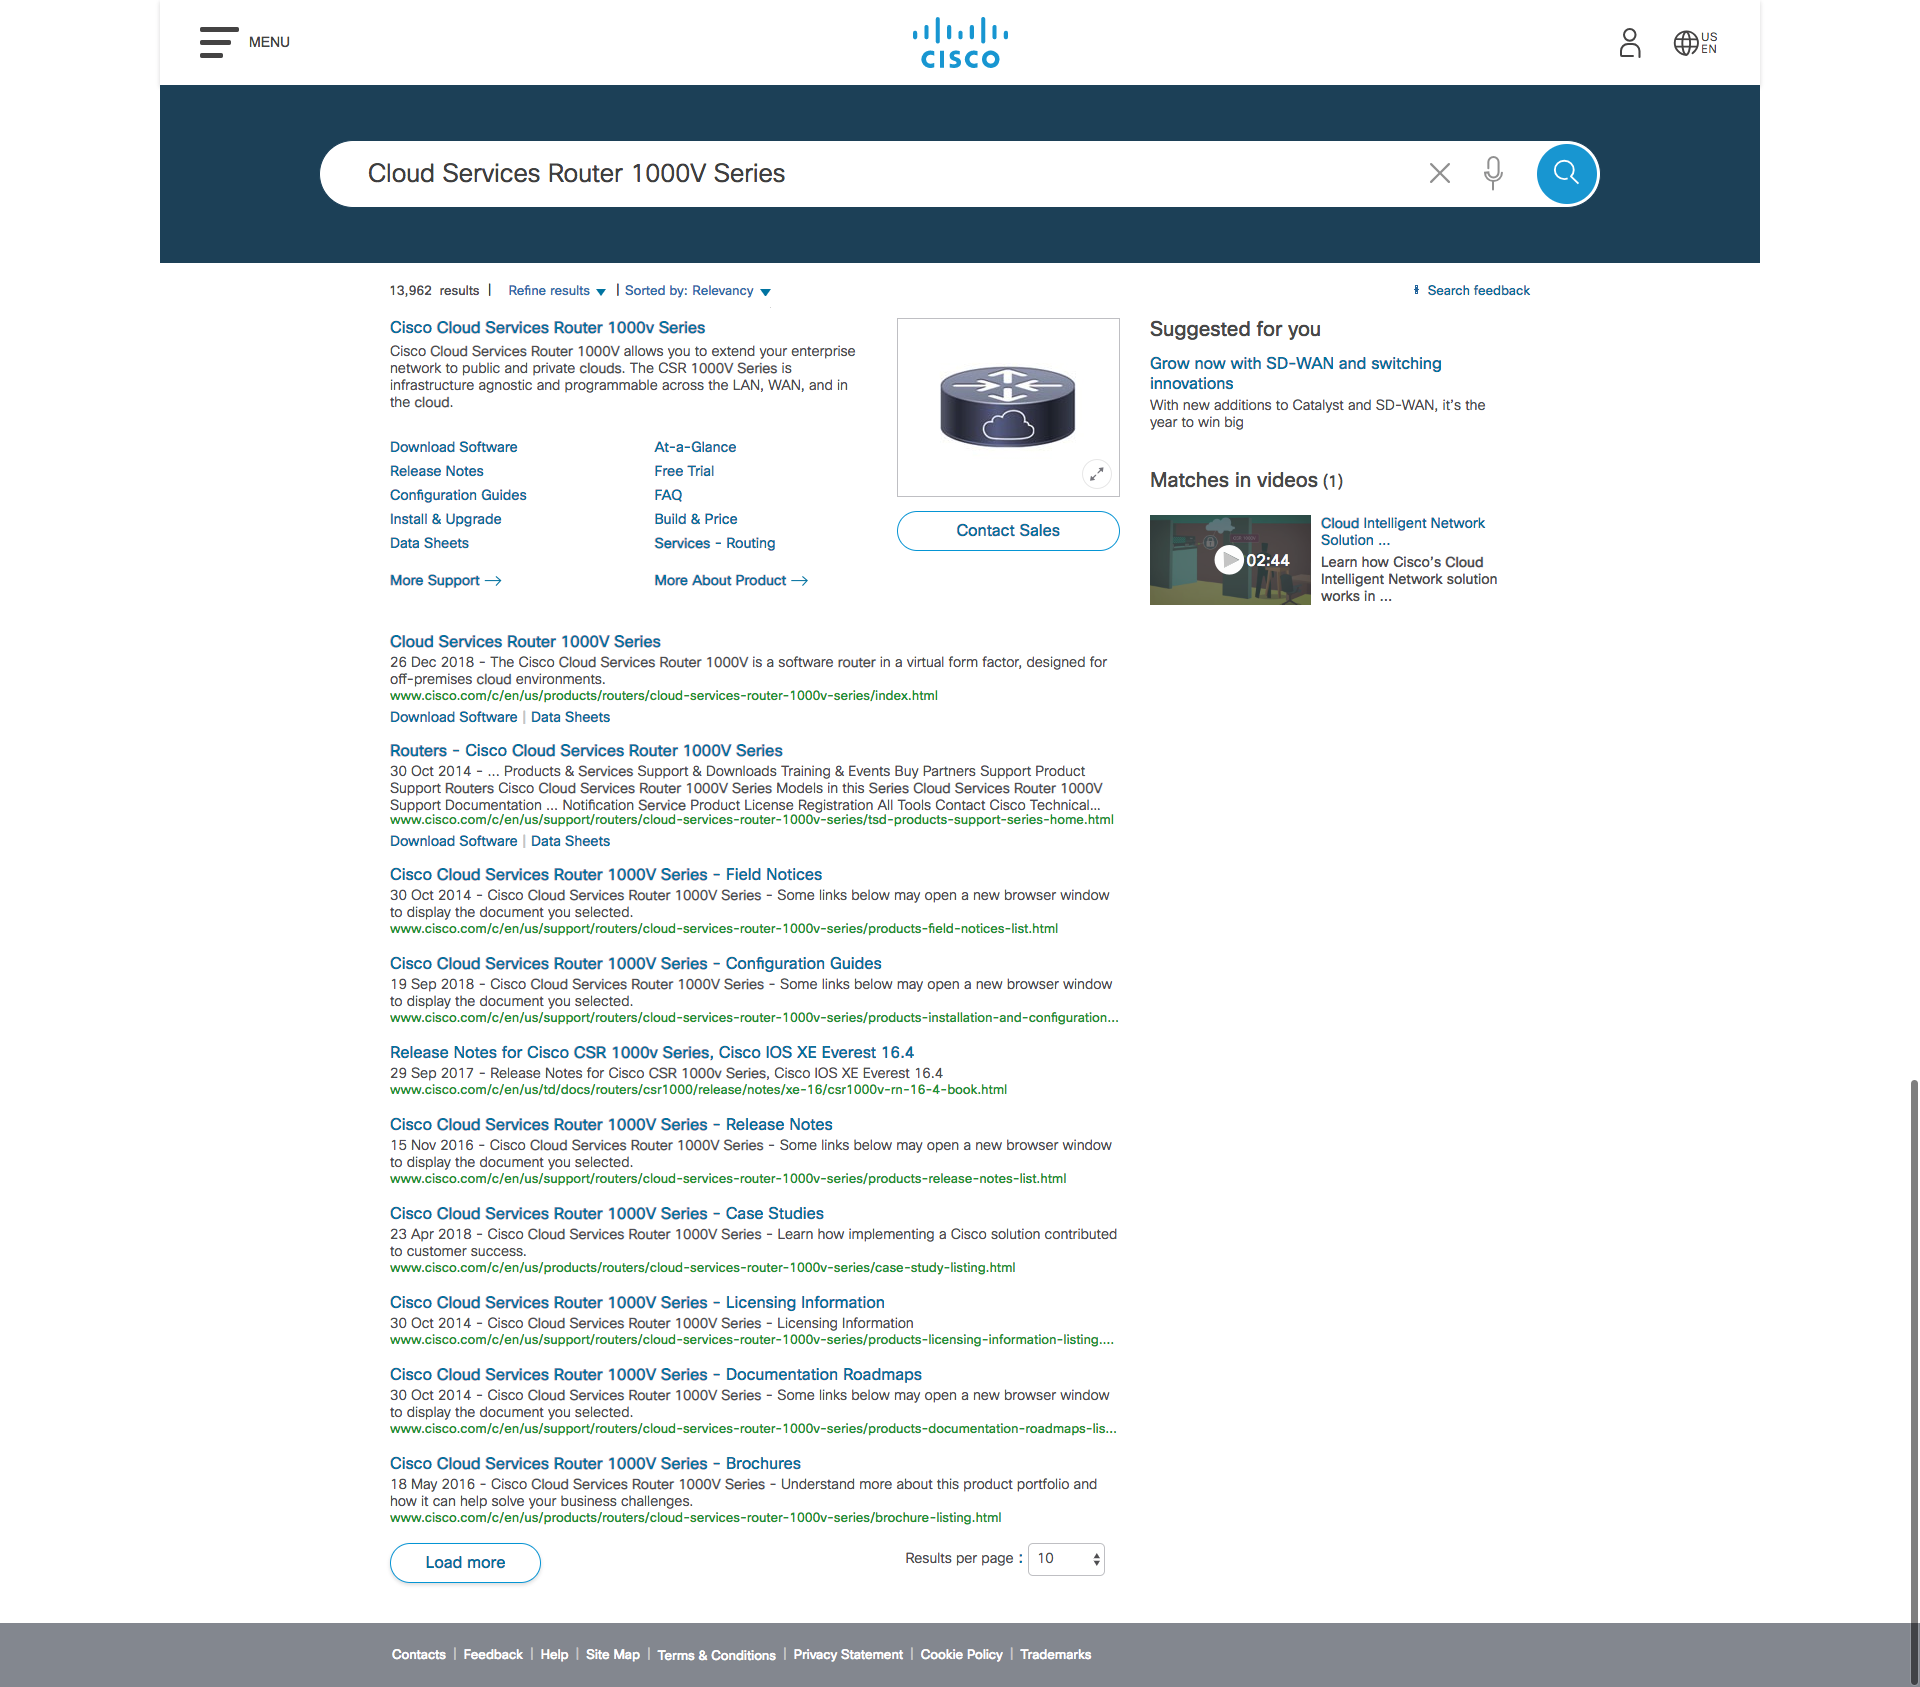 Pin By Ranjit Gahir On M Site Search Cisco Networking Security Solutions Cyber Security